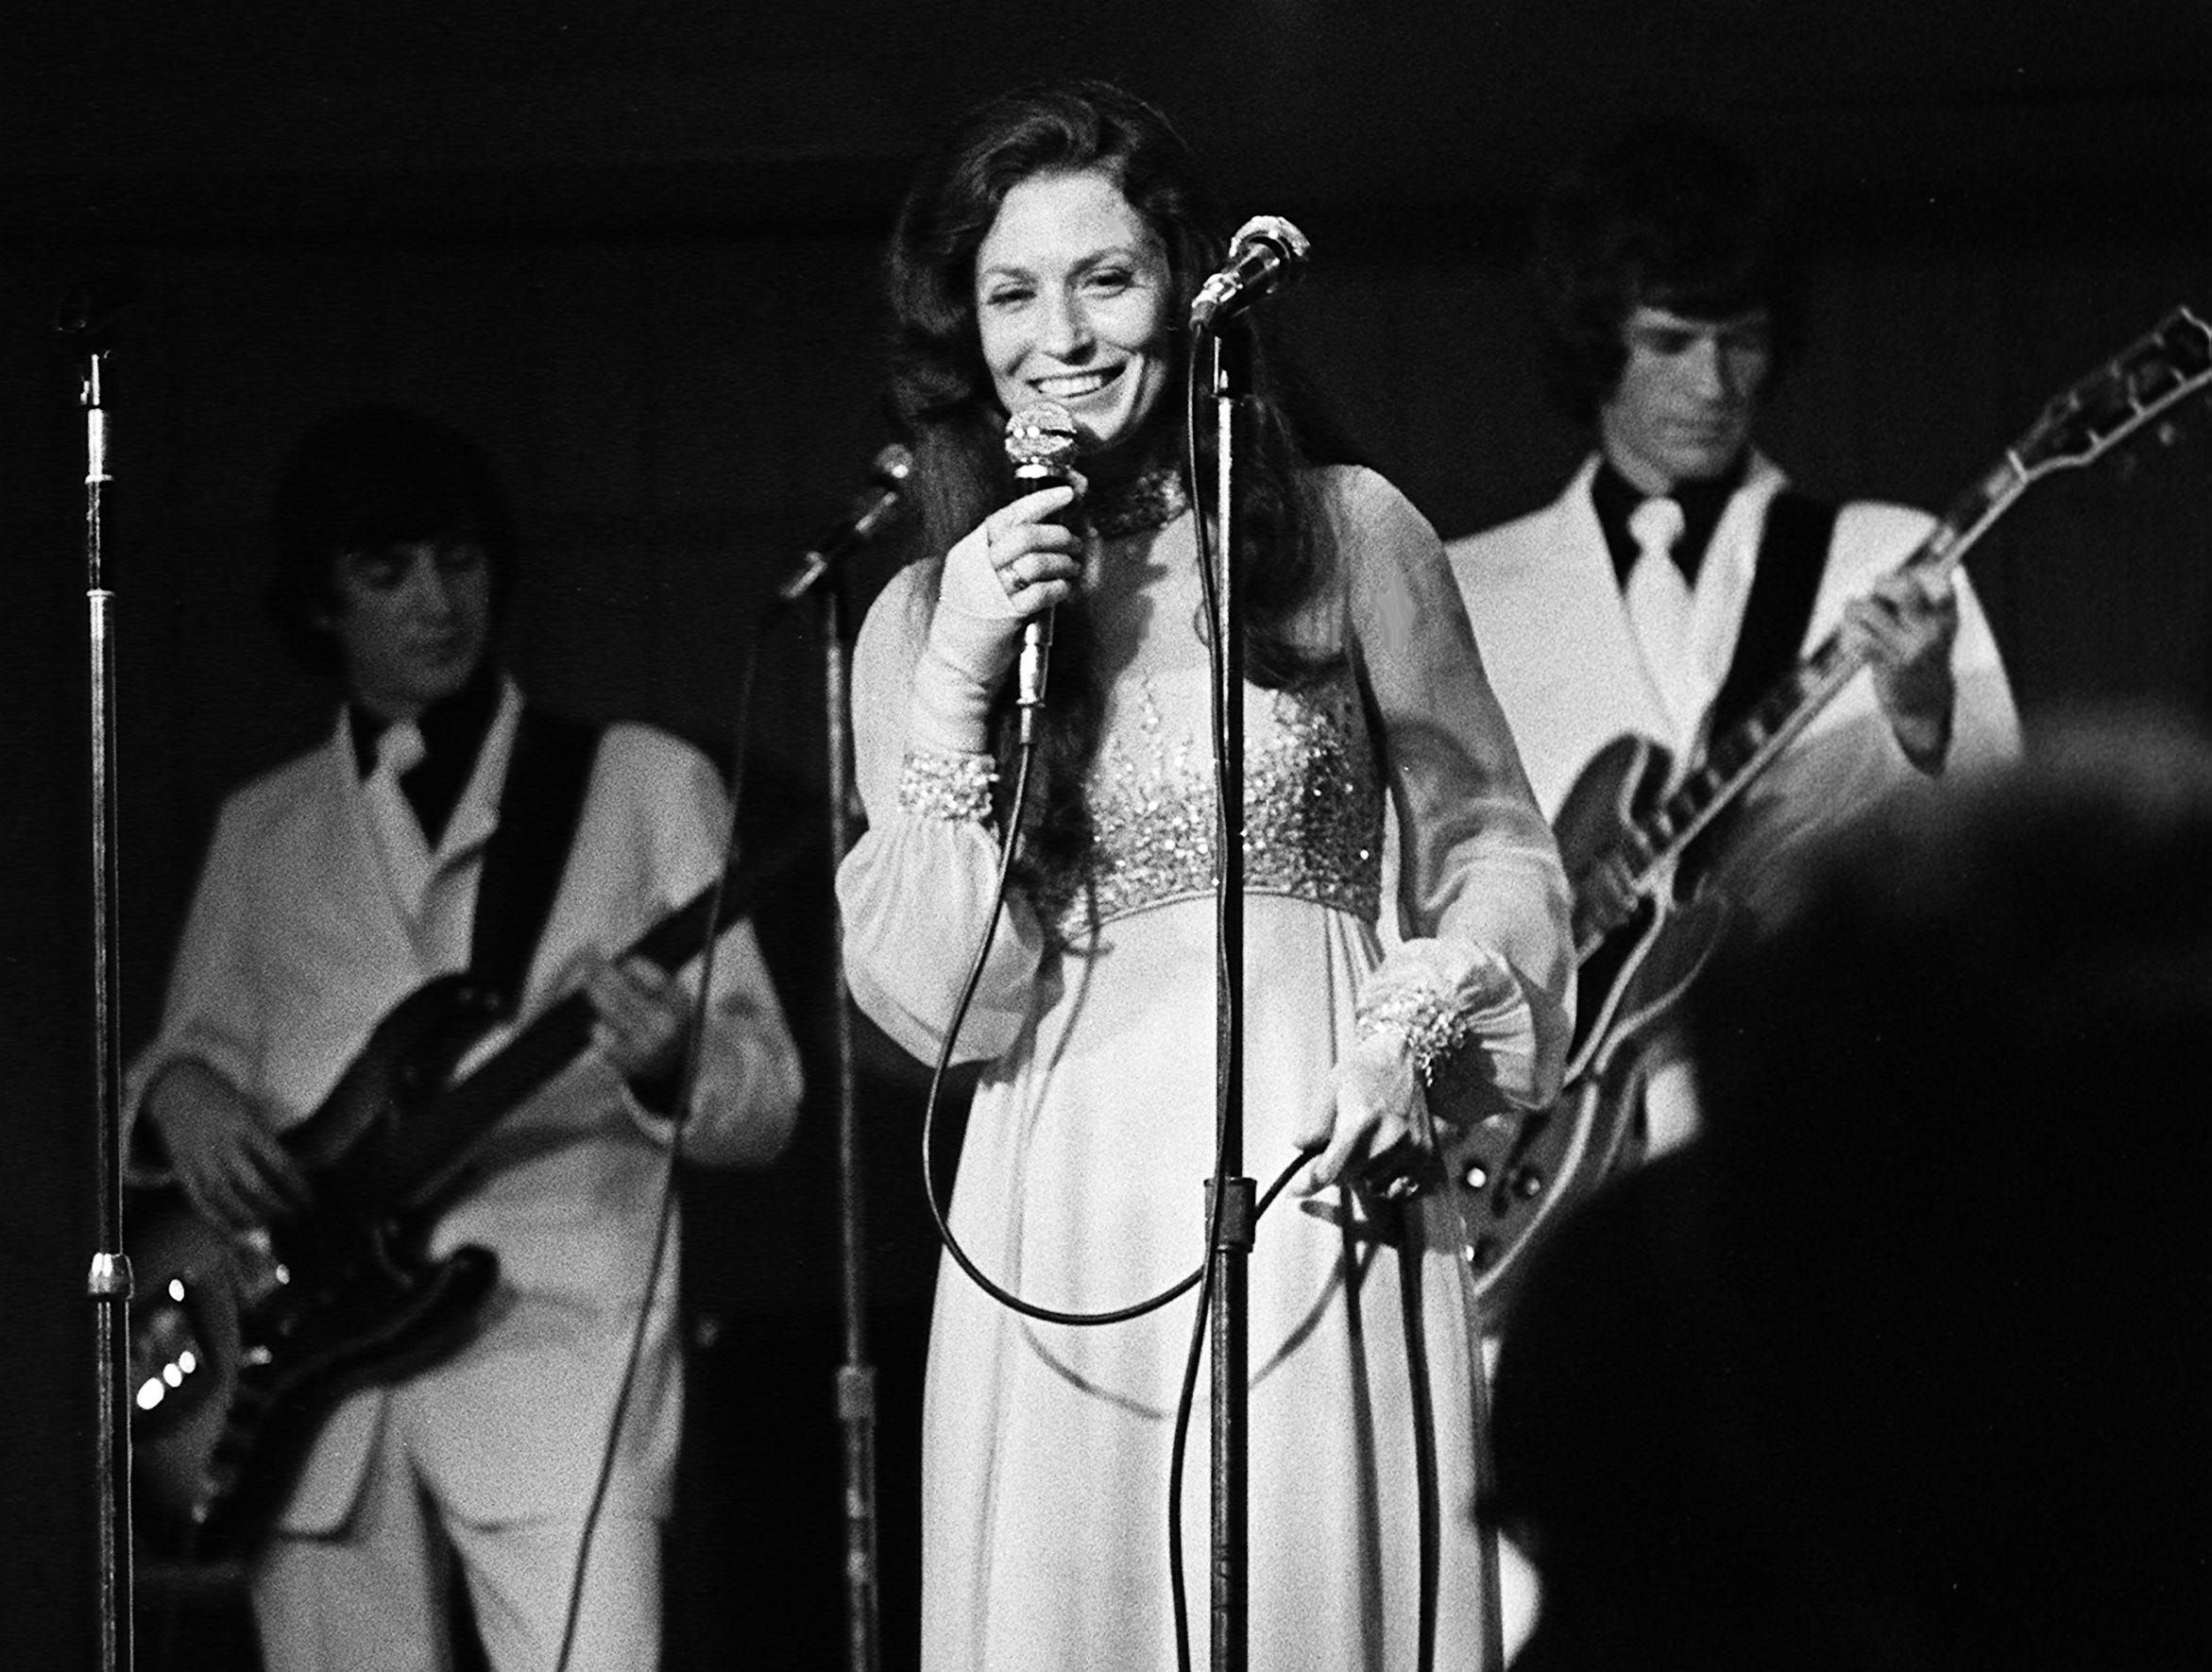 Loretta Lynn performs for 700 fans at a $20-a-plate dinner sponsored by the International Fan Club Organization at the Sheraton Downtown Nashville on June 6, 1973. It was the first night of the second annual Country Music Fan Fair.